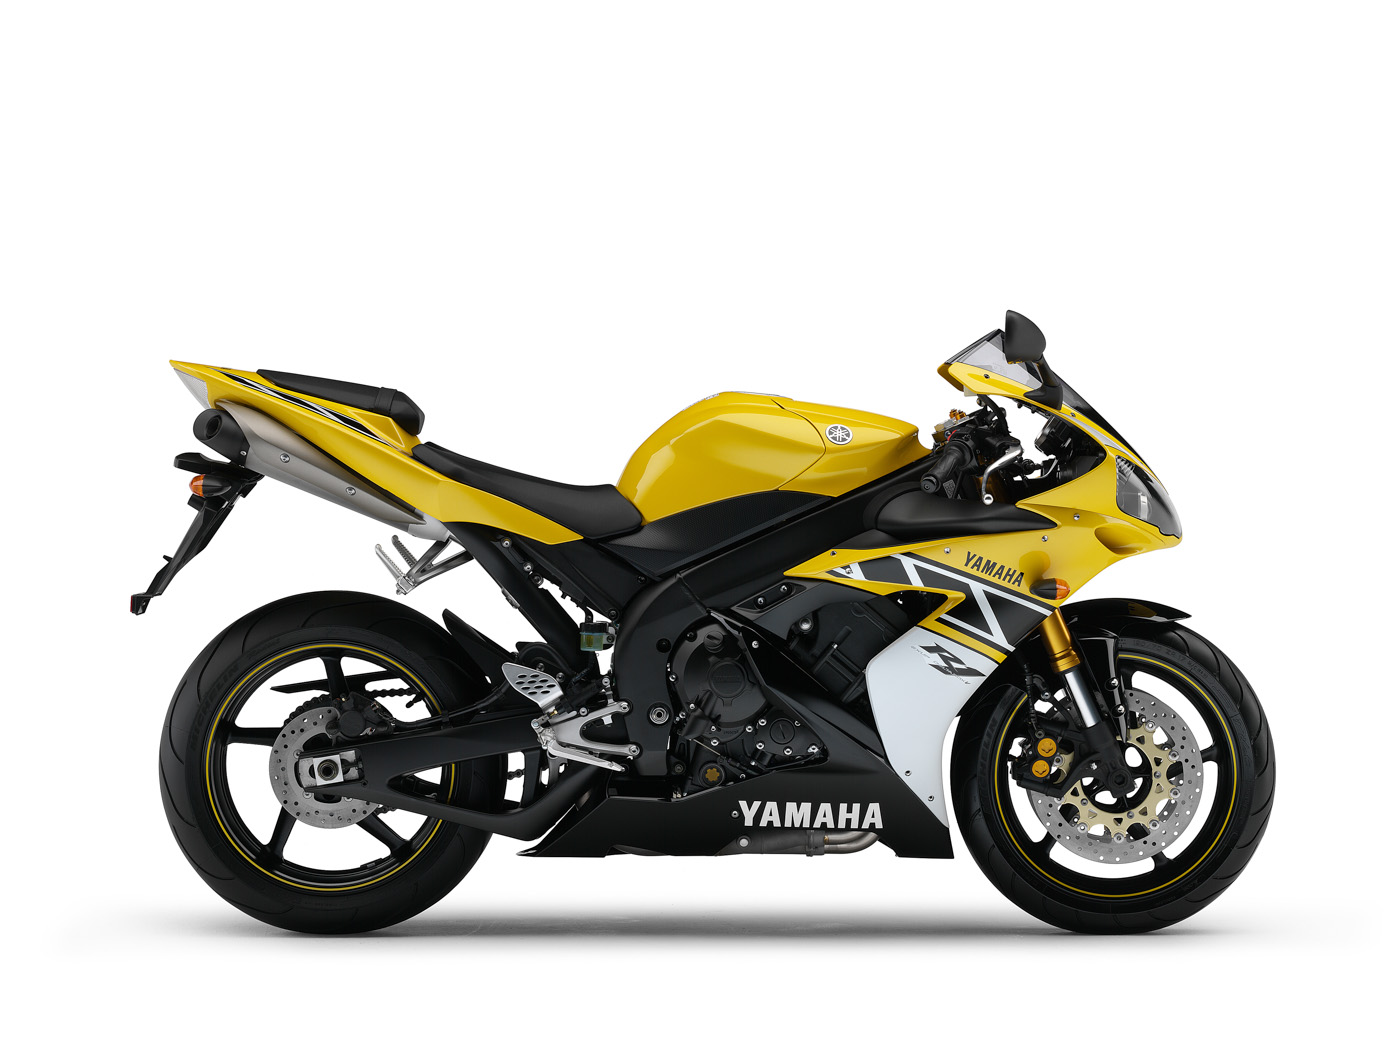 yamaha yzf r1 50th anniversary 2006 agora moto. Black Bedroom Furniture Sets. Home Design Ideas